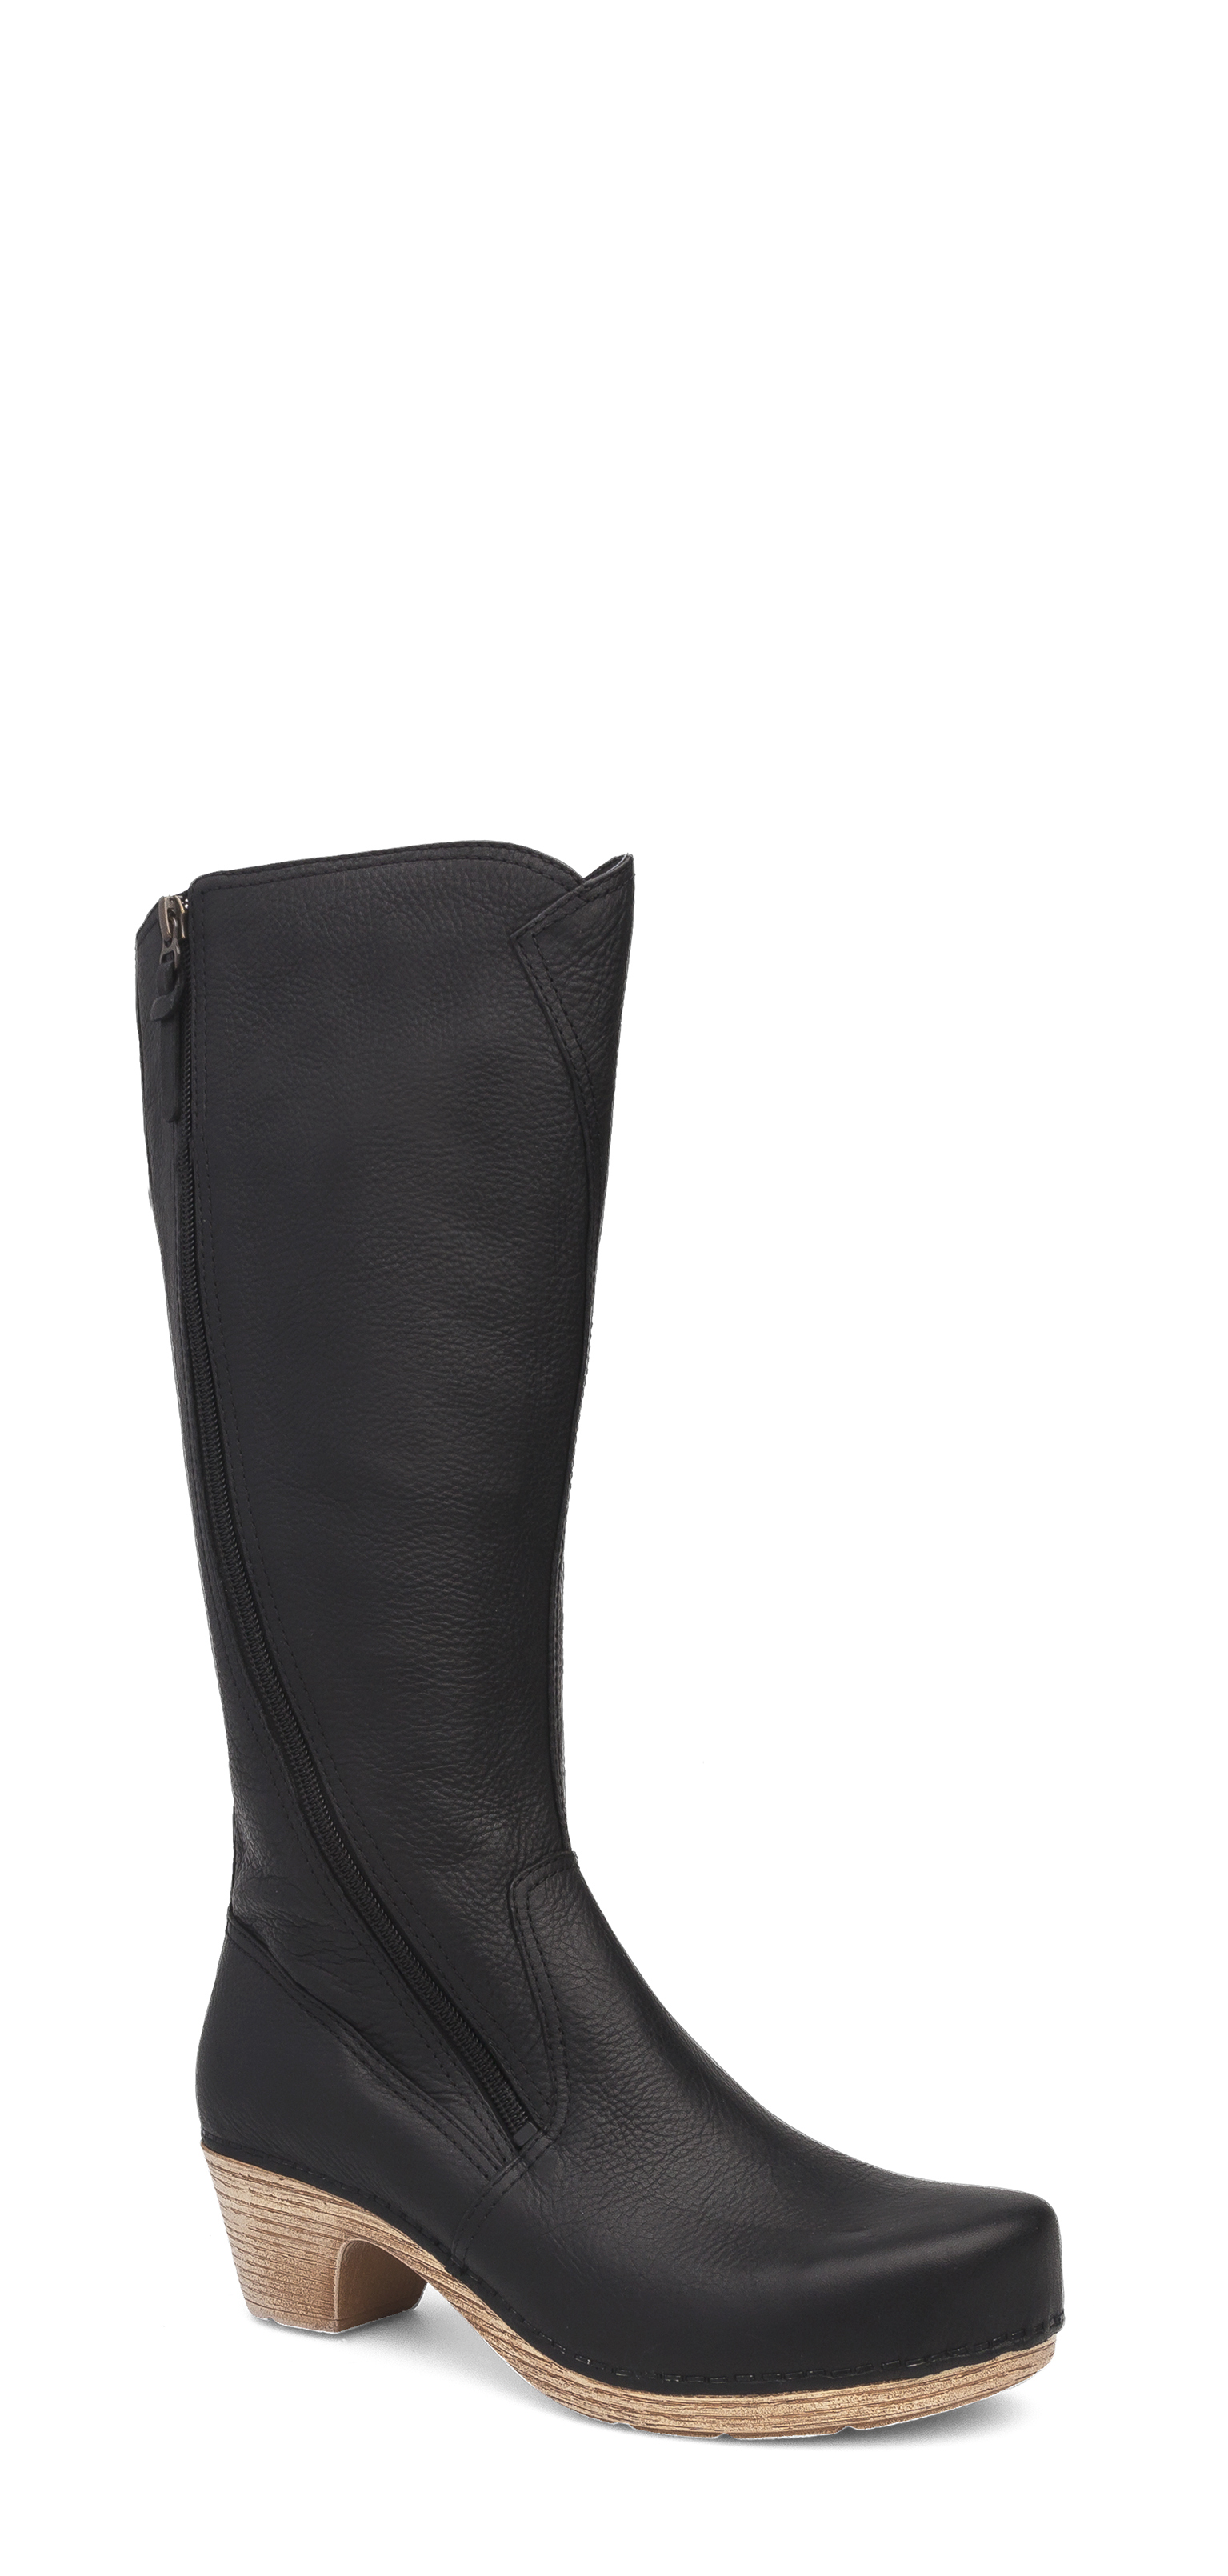 5432f7da0ad5 The Dansko Black Tumbled Pull Up from the Martha collection.